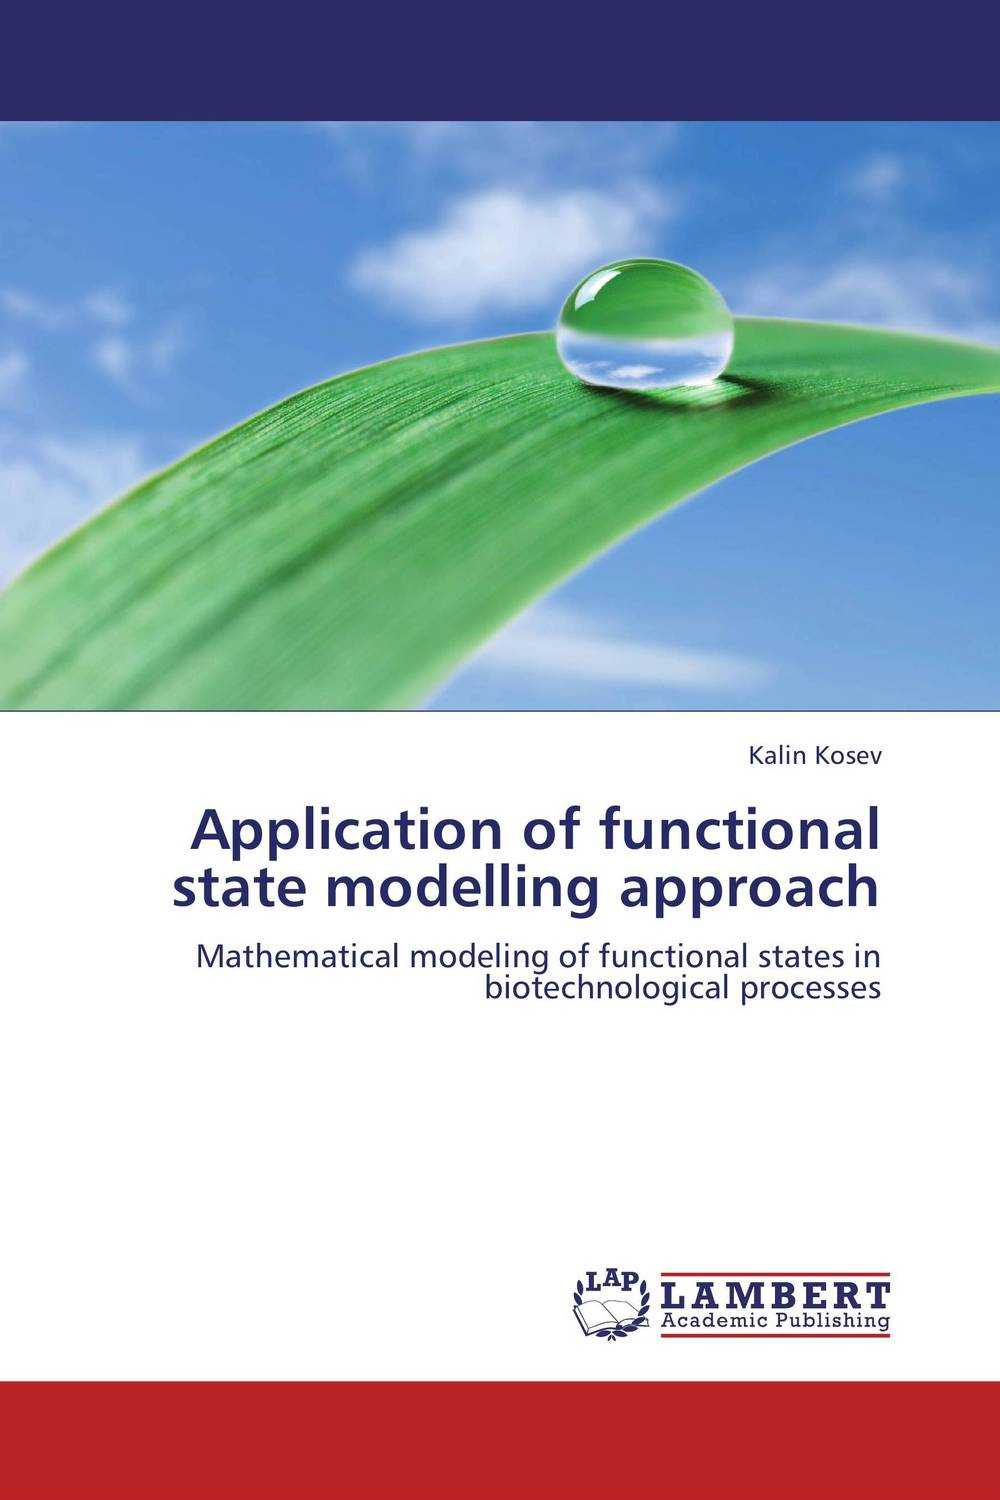 Application of functional state modelling approach the application of global ethics to solve local improprieties